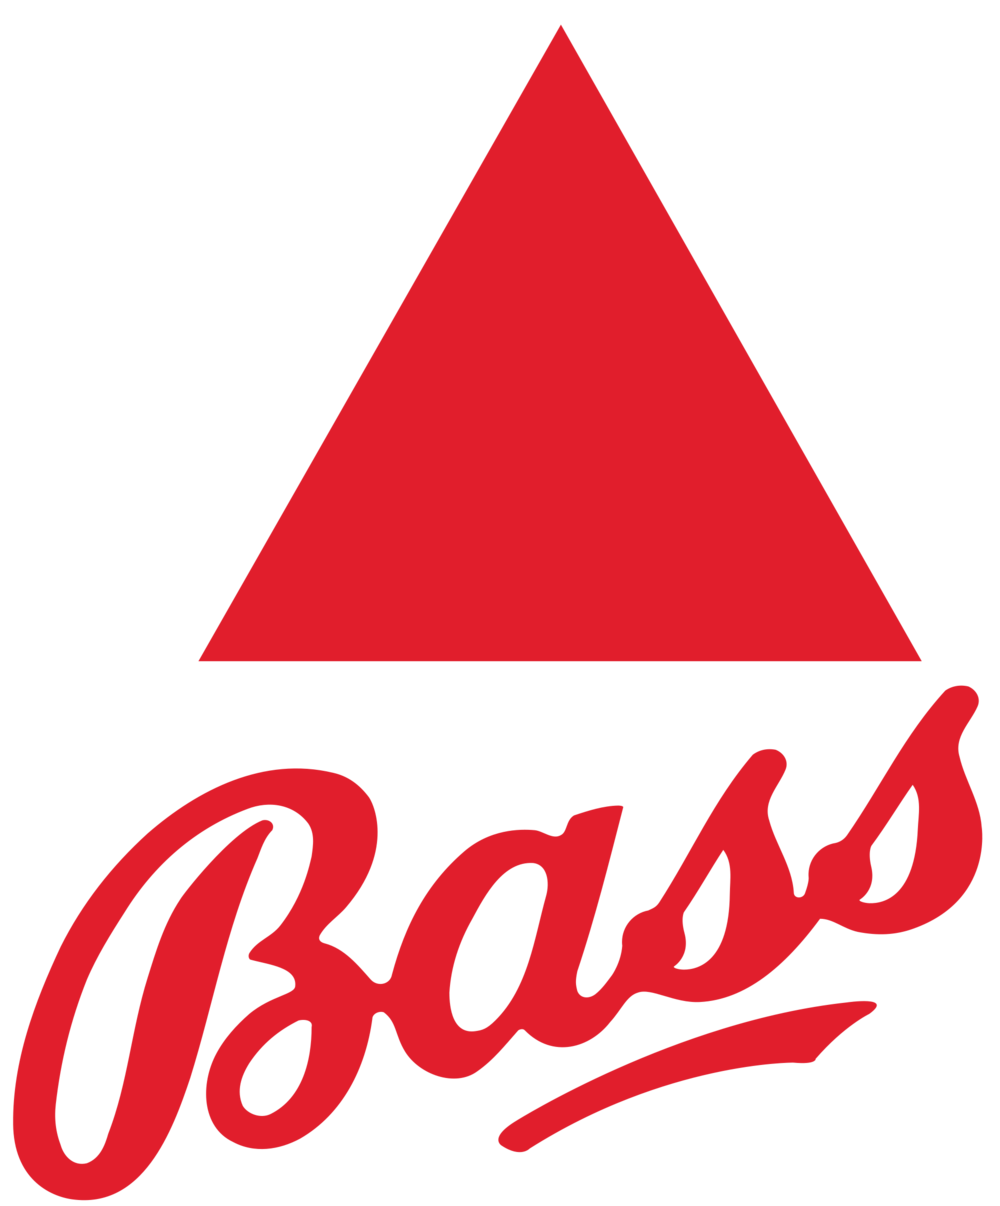 Bass.png